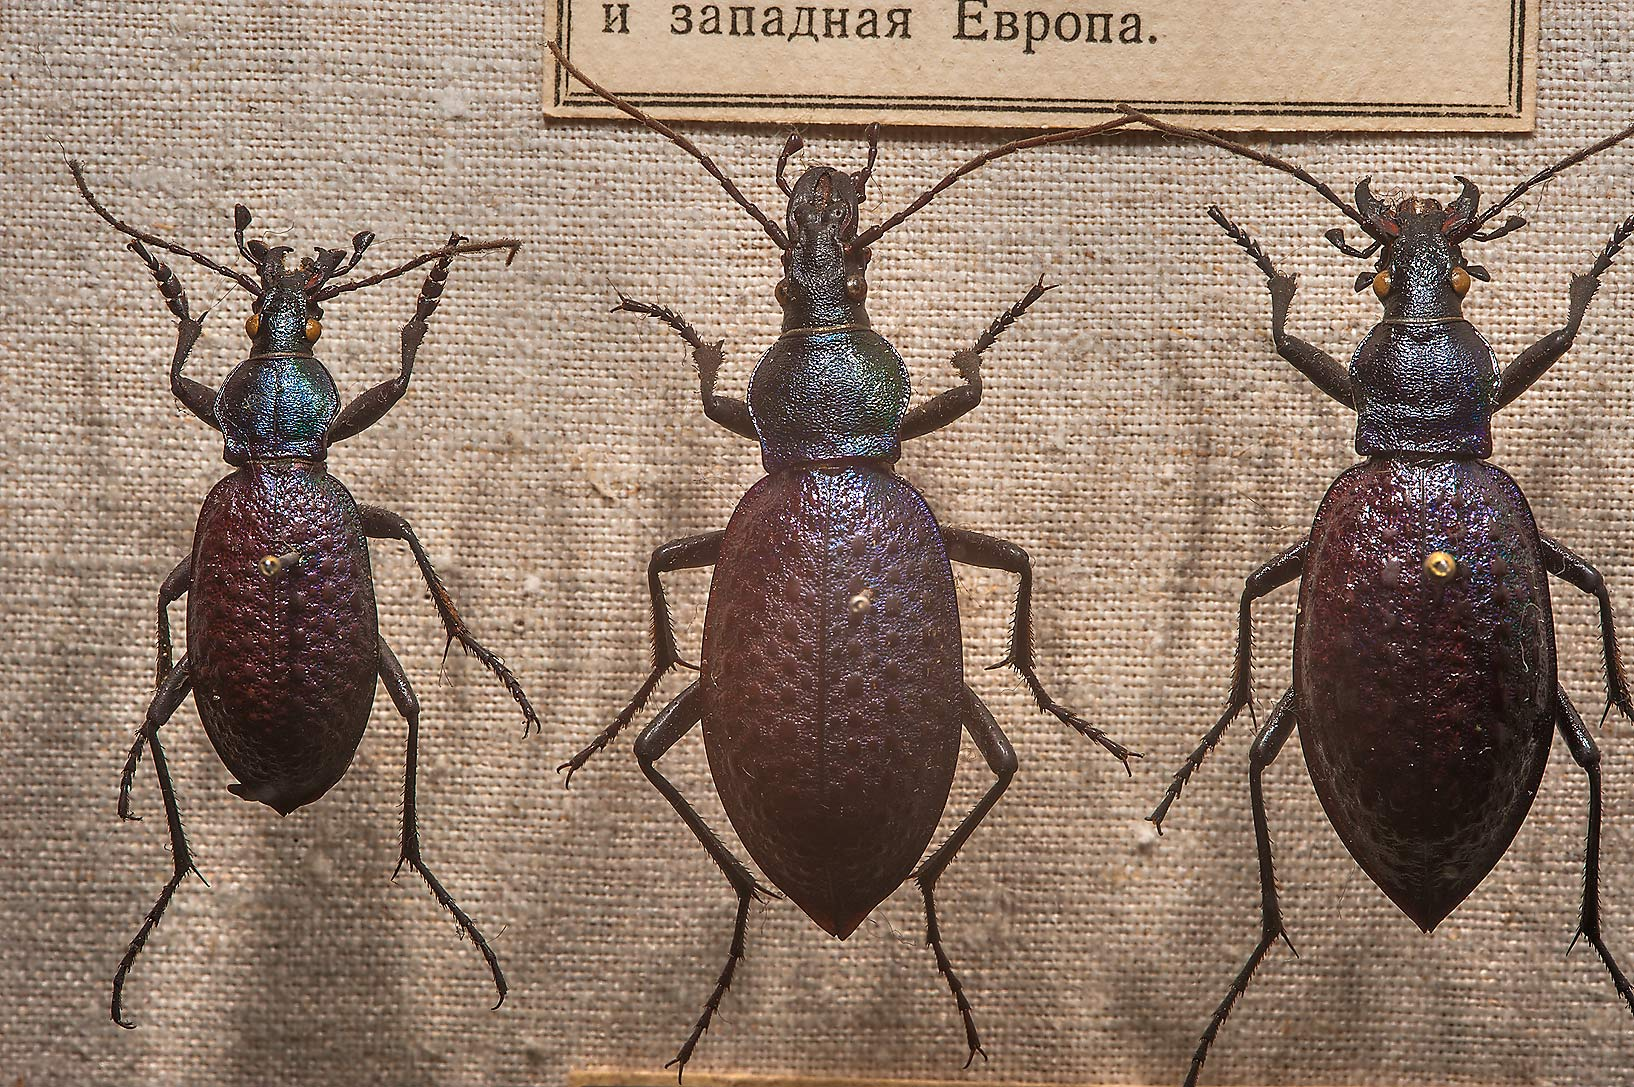 Large ground beetles in Zoological Museum. St.Petersburg, Russia